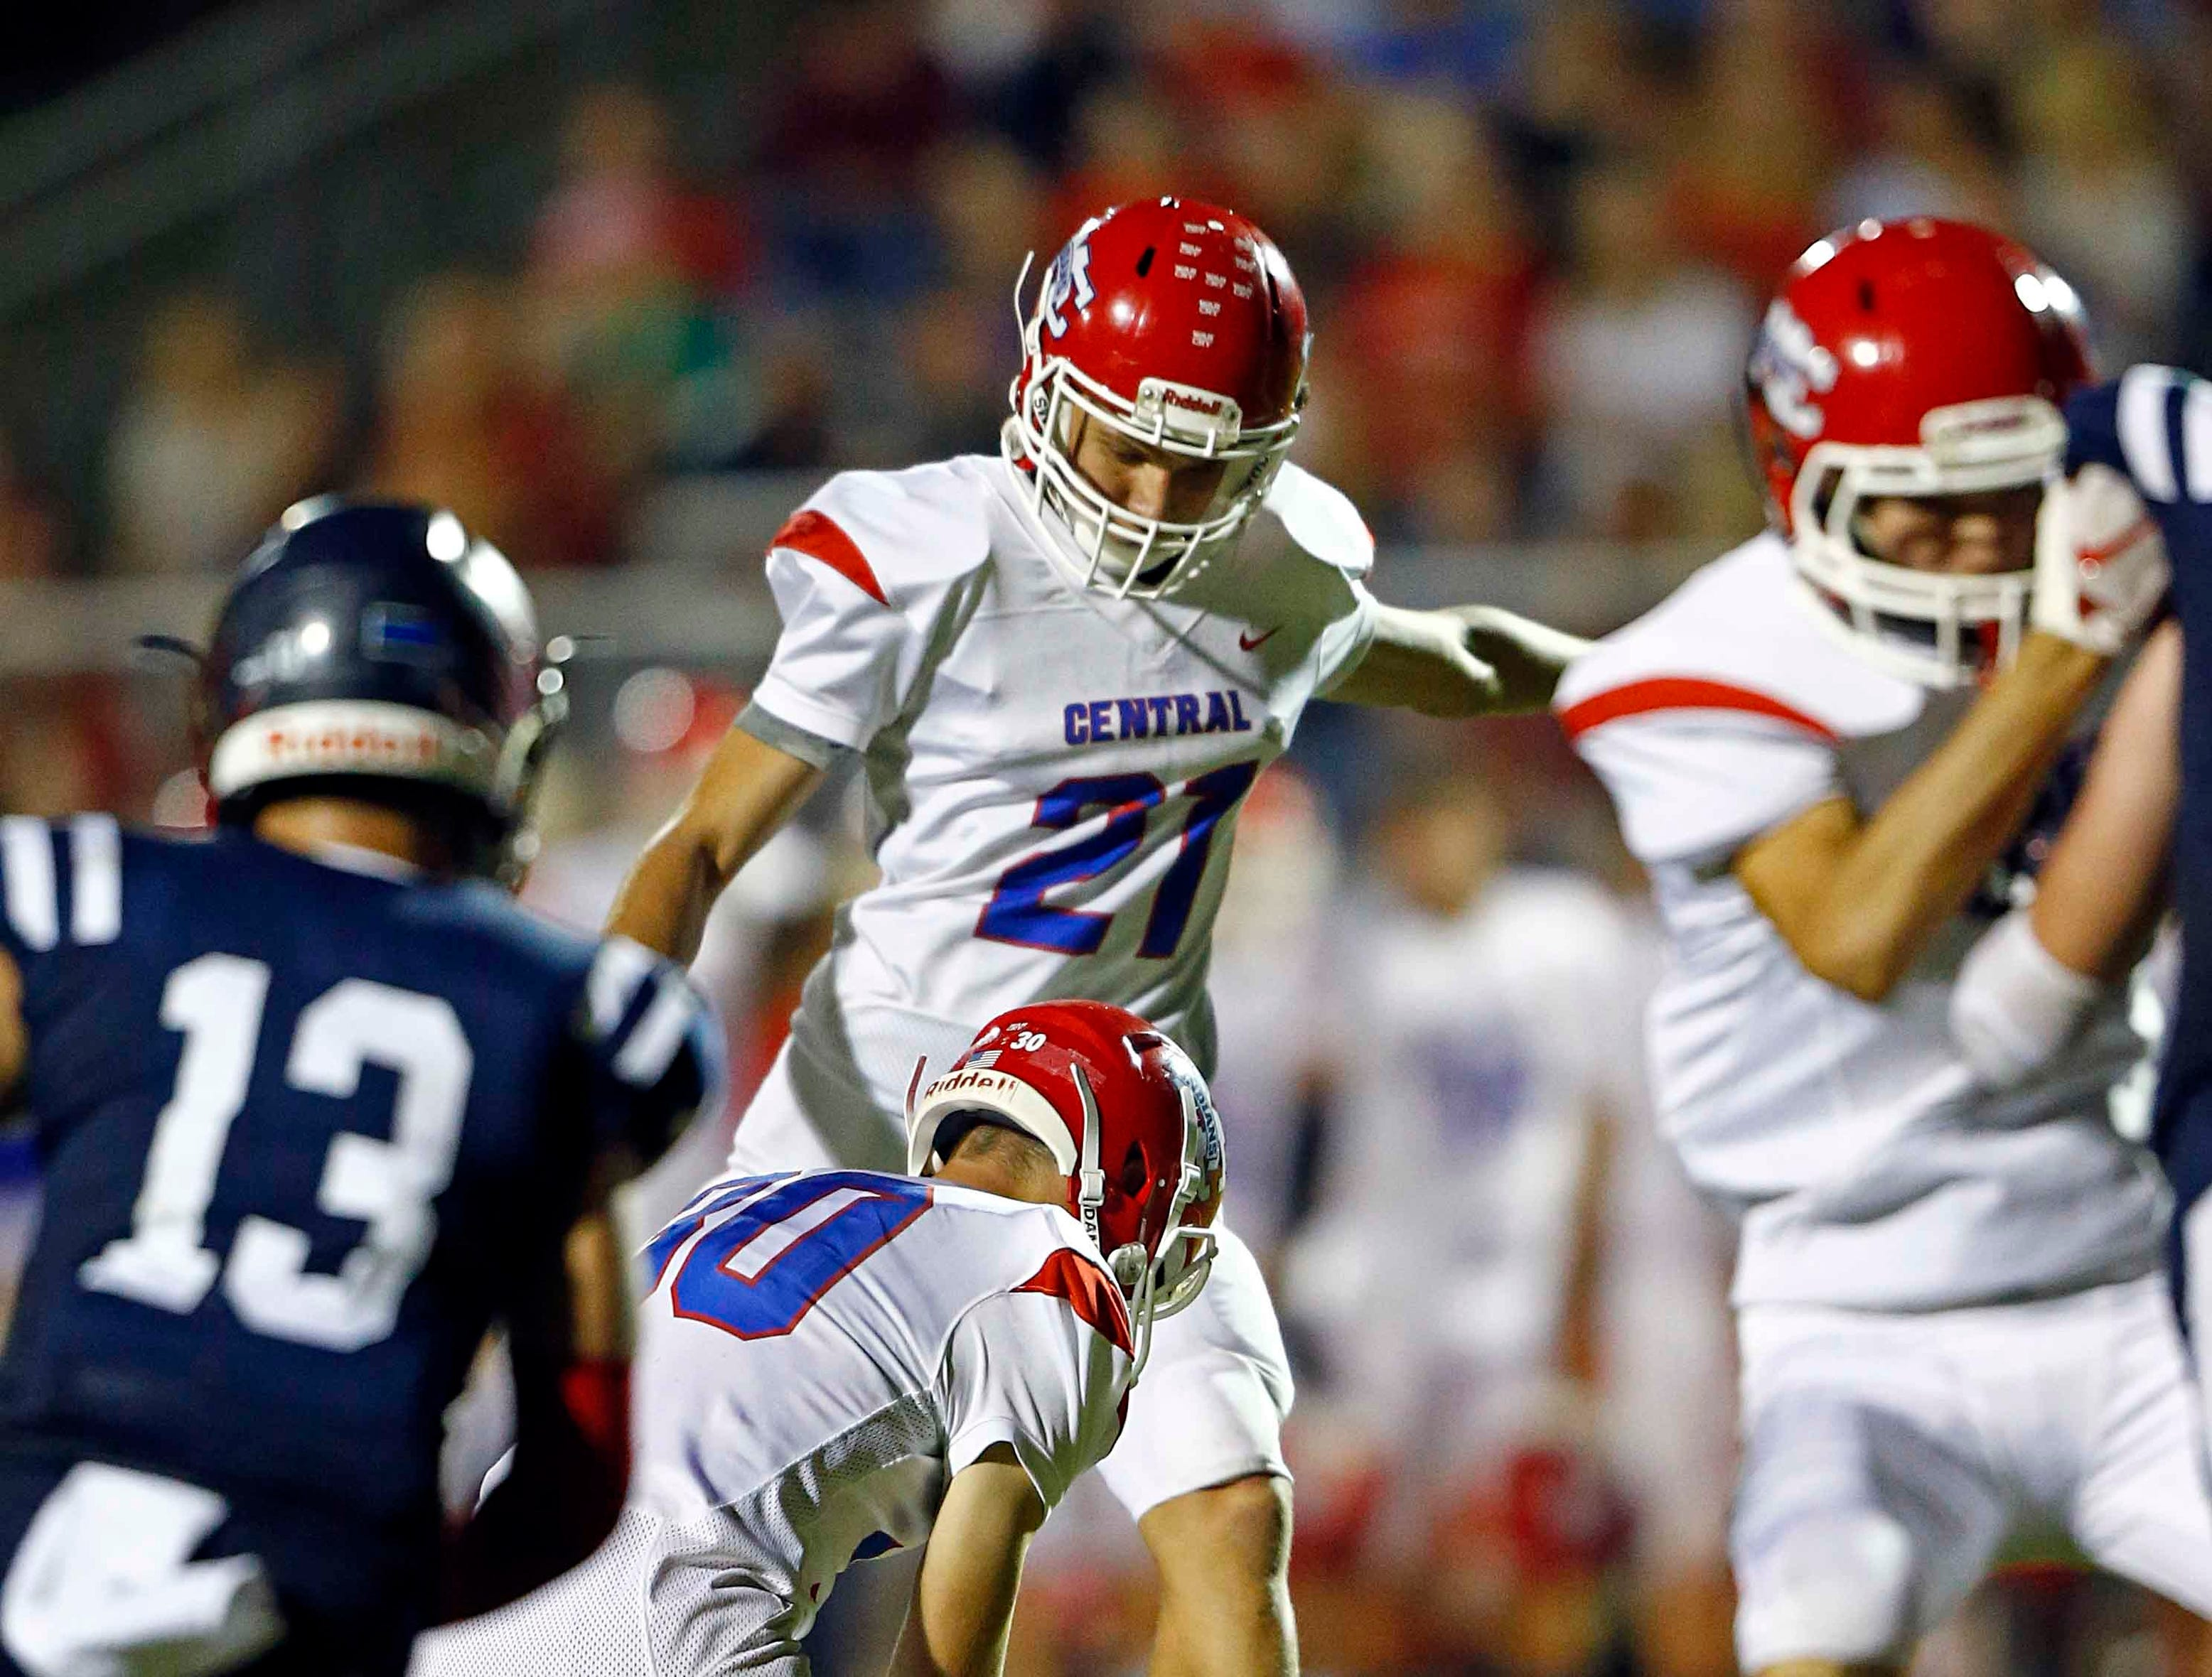 Montgomery Central's Lucas Schaffer (27) kicks a field goal during the game against Creek Wood Friday, Sept. 14, 2018, in Charlotte, Tenn.